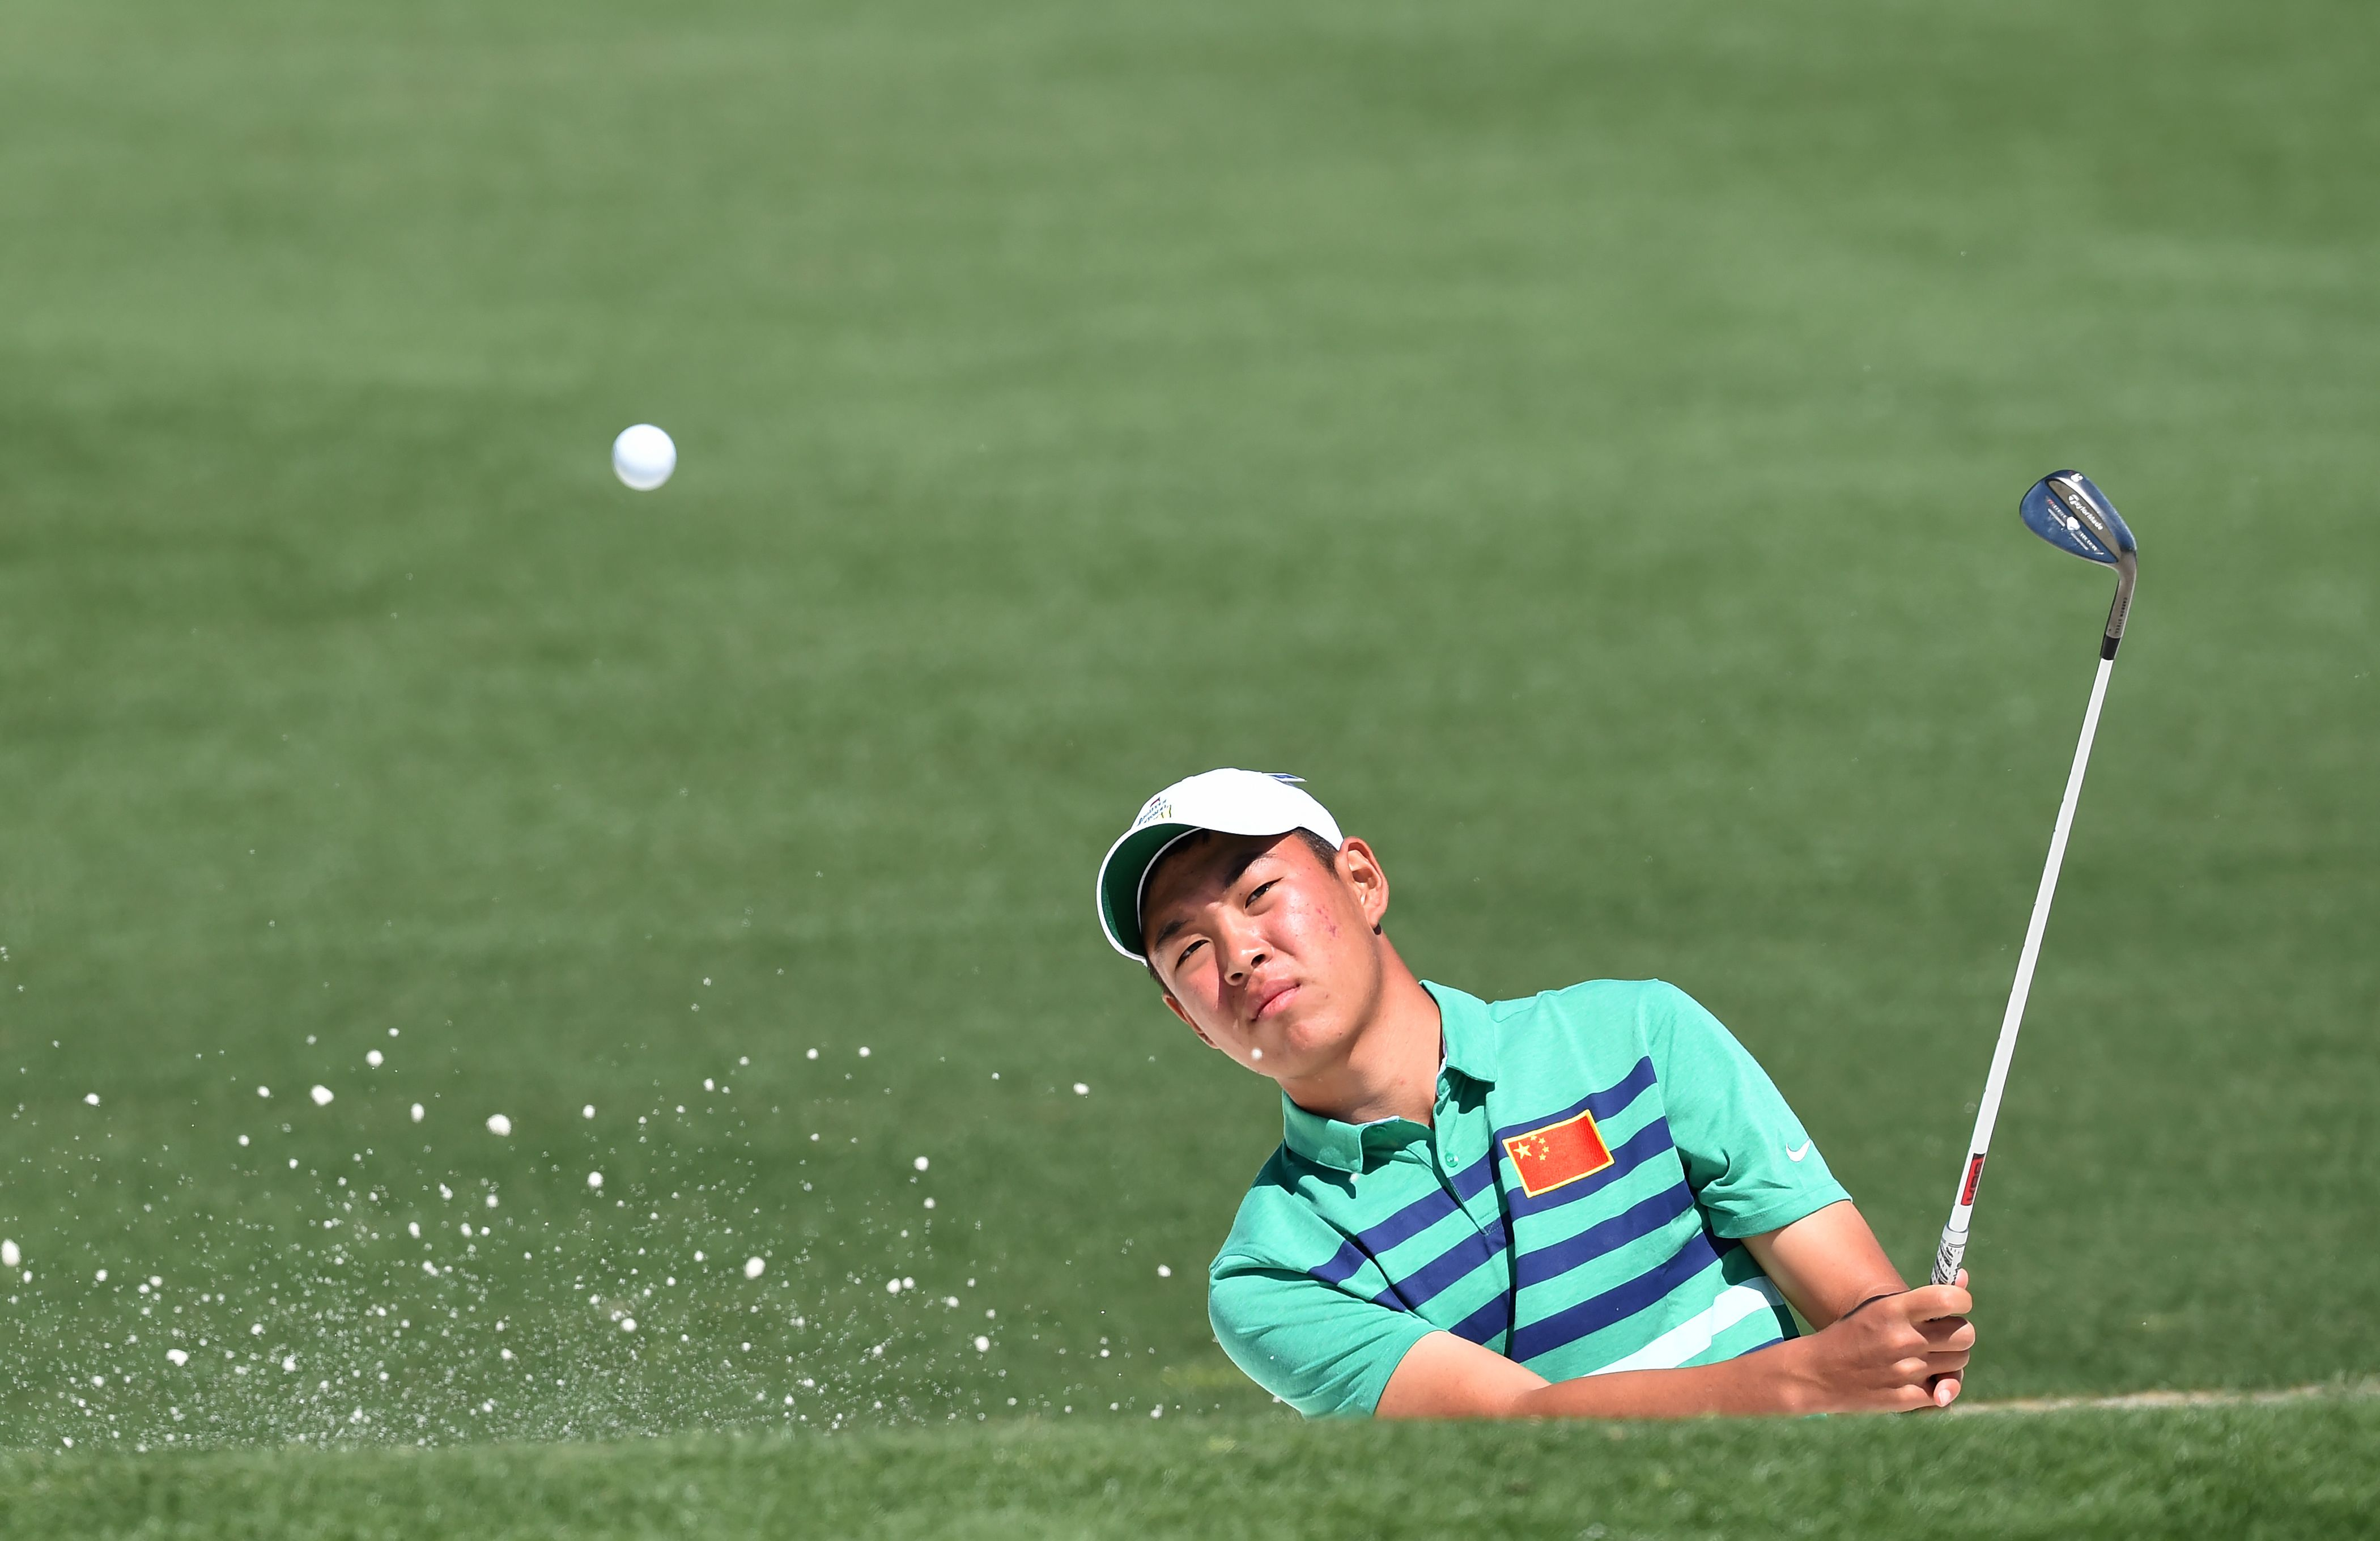 China's Jin Cheng hits out of a bunker during a practice round prior to the start of the 80th Masters Golf Tournament at the Augusta National Golf Club in Augusta, Ga., on April 5, 2016